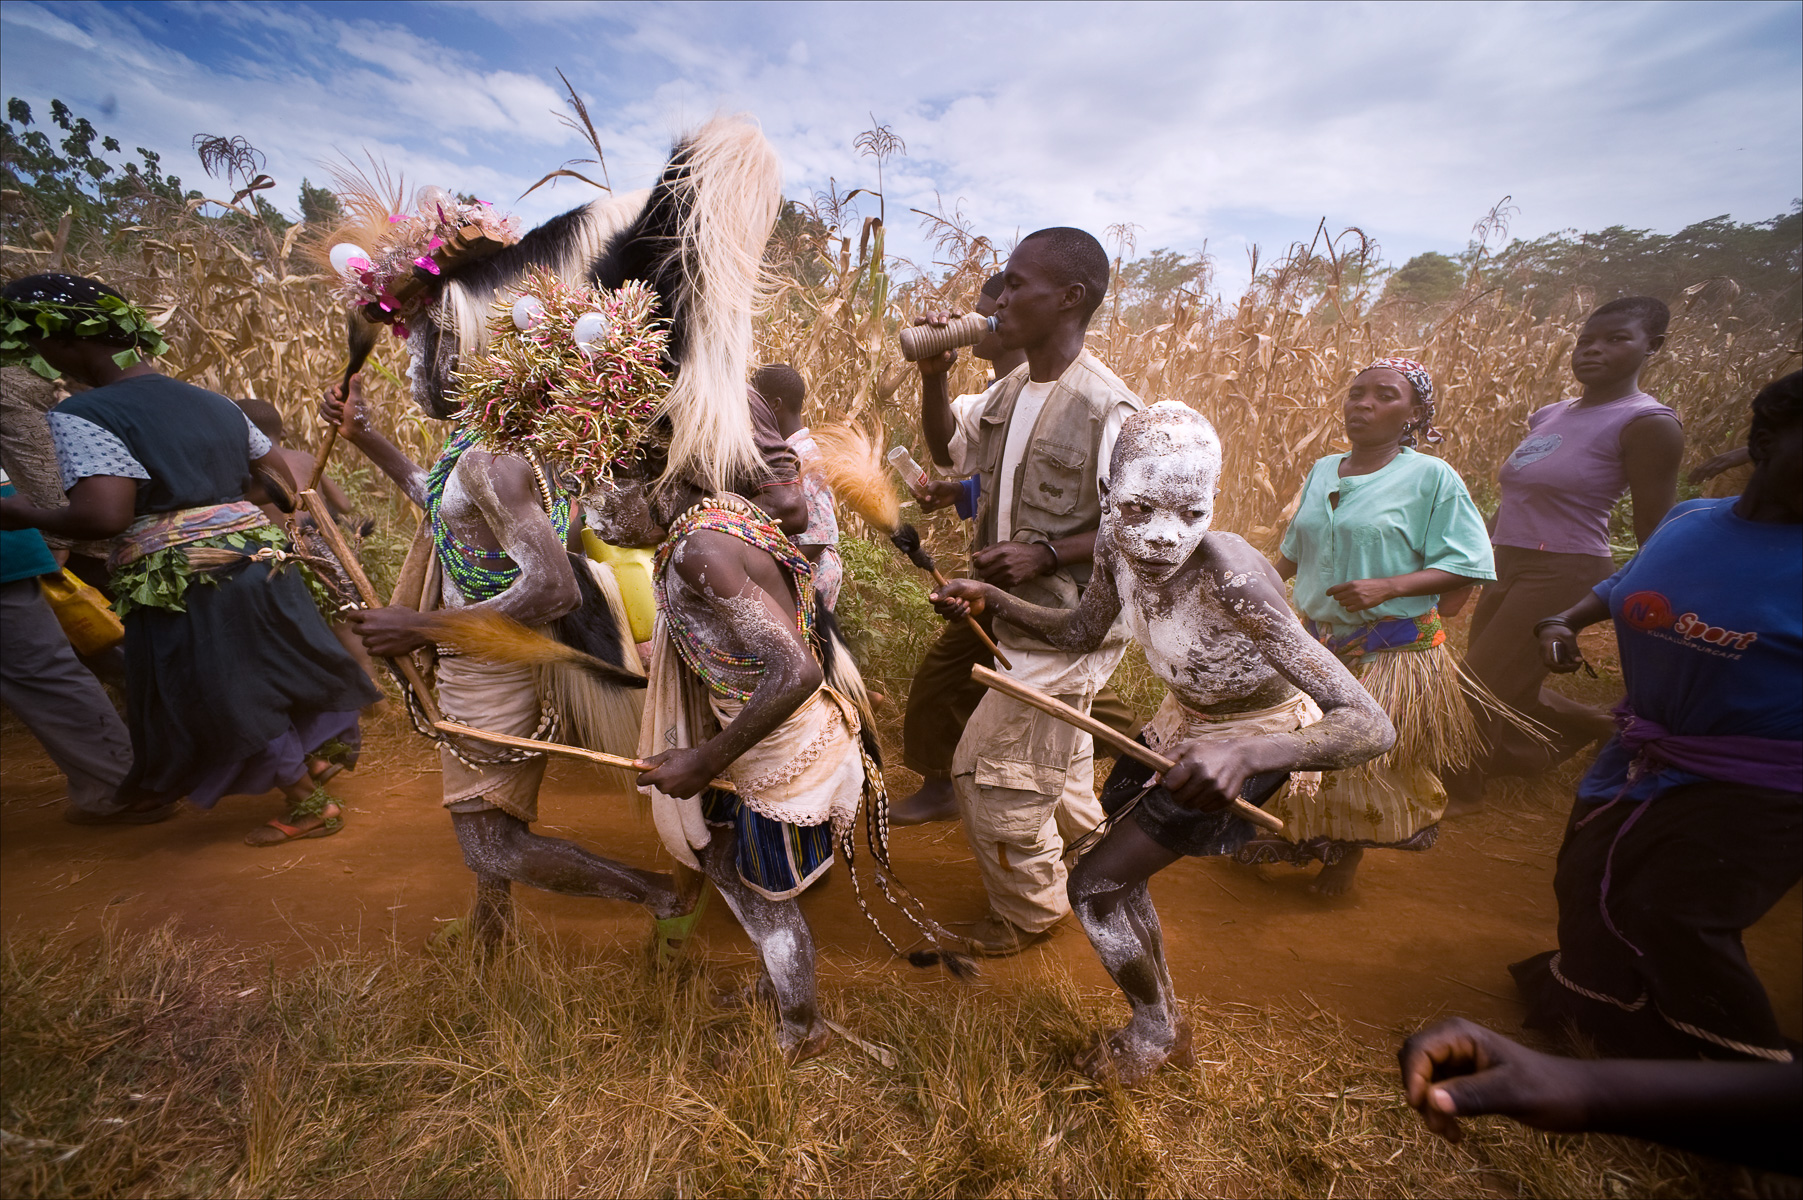 Namugali, 12 years, Numugali John, 11 years, Wameyo Geofery, 15 years, and Wameyo Bosco, 14 years, visit homes in their community hoping to get gifts on the day they are to be circumcised in Namakandwa Bukeka, Uganda. For the Bagisu, the dominant tribe in Eastern Uganda, circumcision is required for a young man to progress to adulthood. The boys are circumcised without anesthesia, if they move or cry out during the cutting they are viewed as a coward and shame their parents and ancestors and will never be viewed as an adult. Recent studies indicate that male circumcision can reduce HIV transmission by as much as 60 percent.